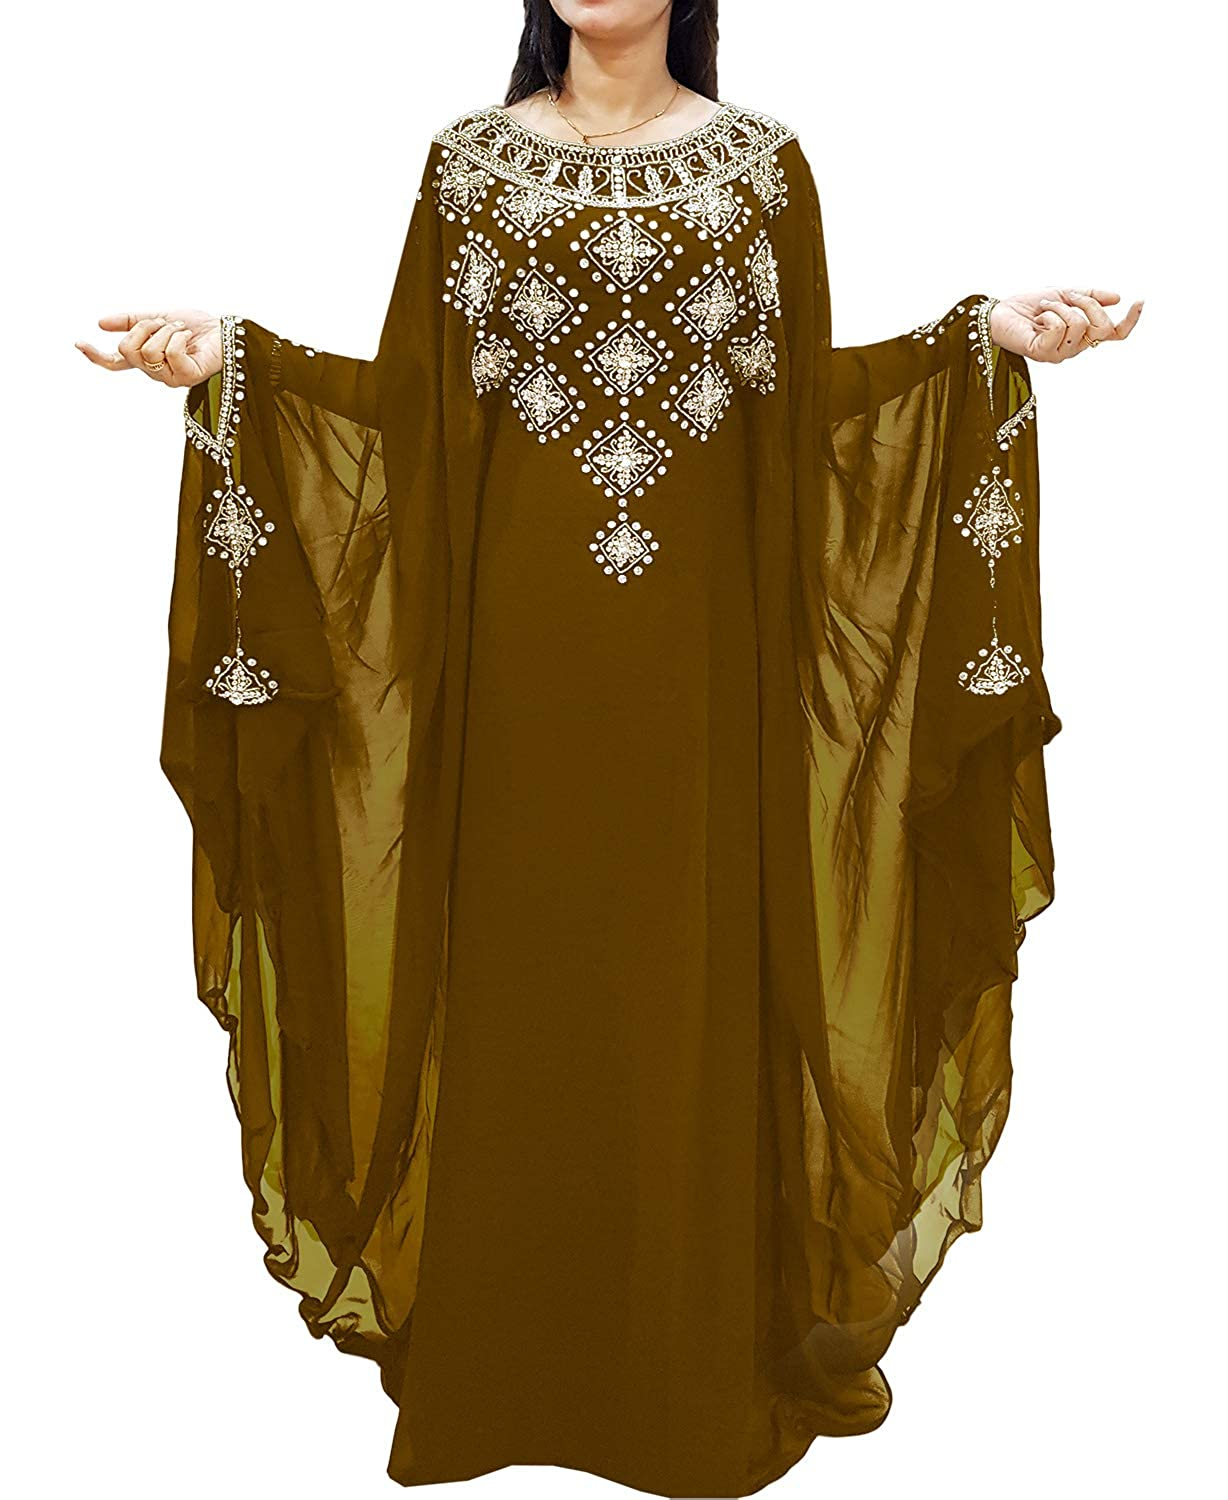 Brown African Boutique Long Sleeve Plus Size Beaded Mgoldccan Kaftans African Dresses for Women